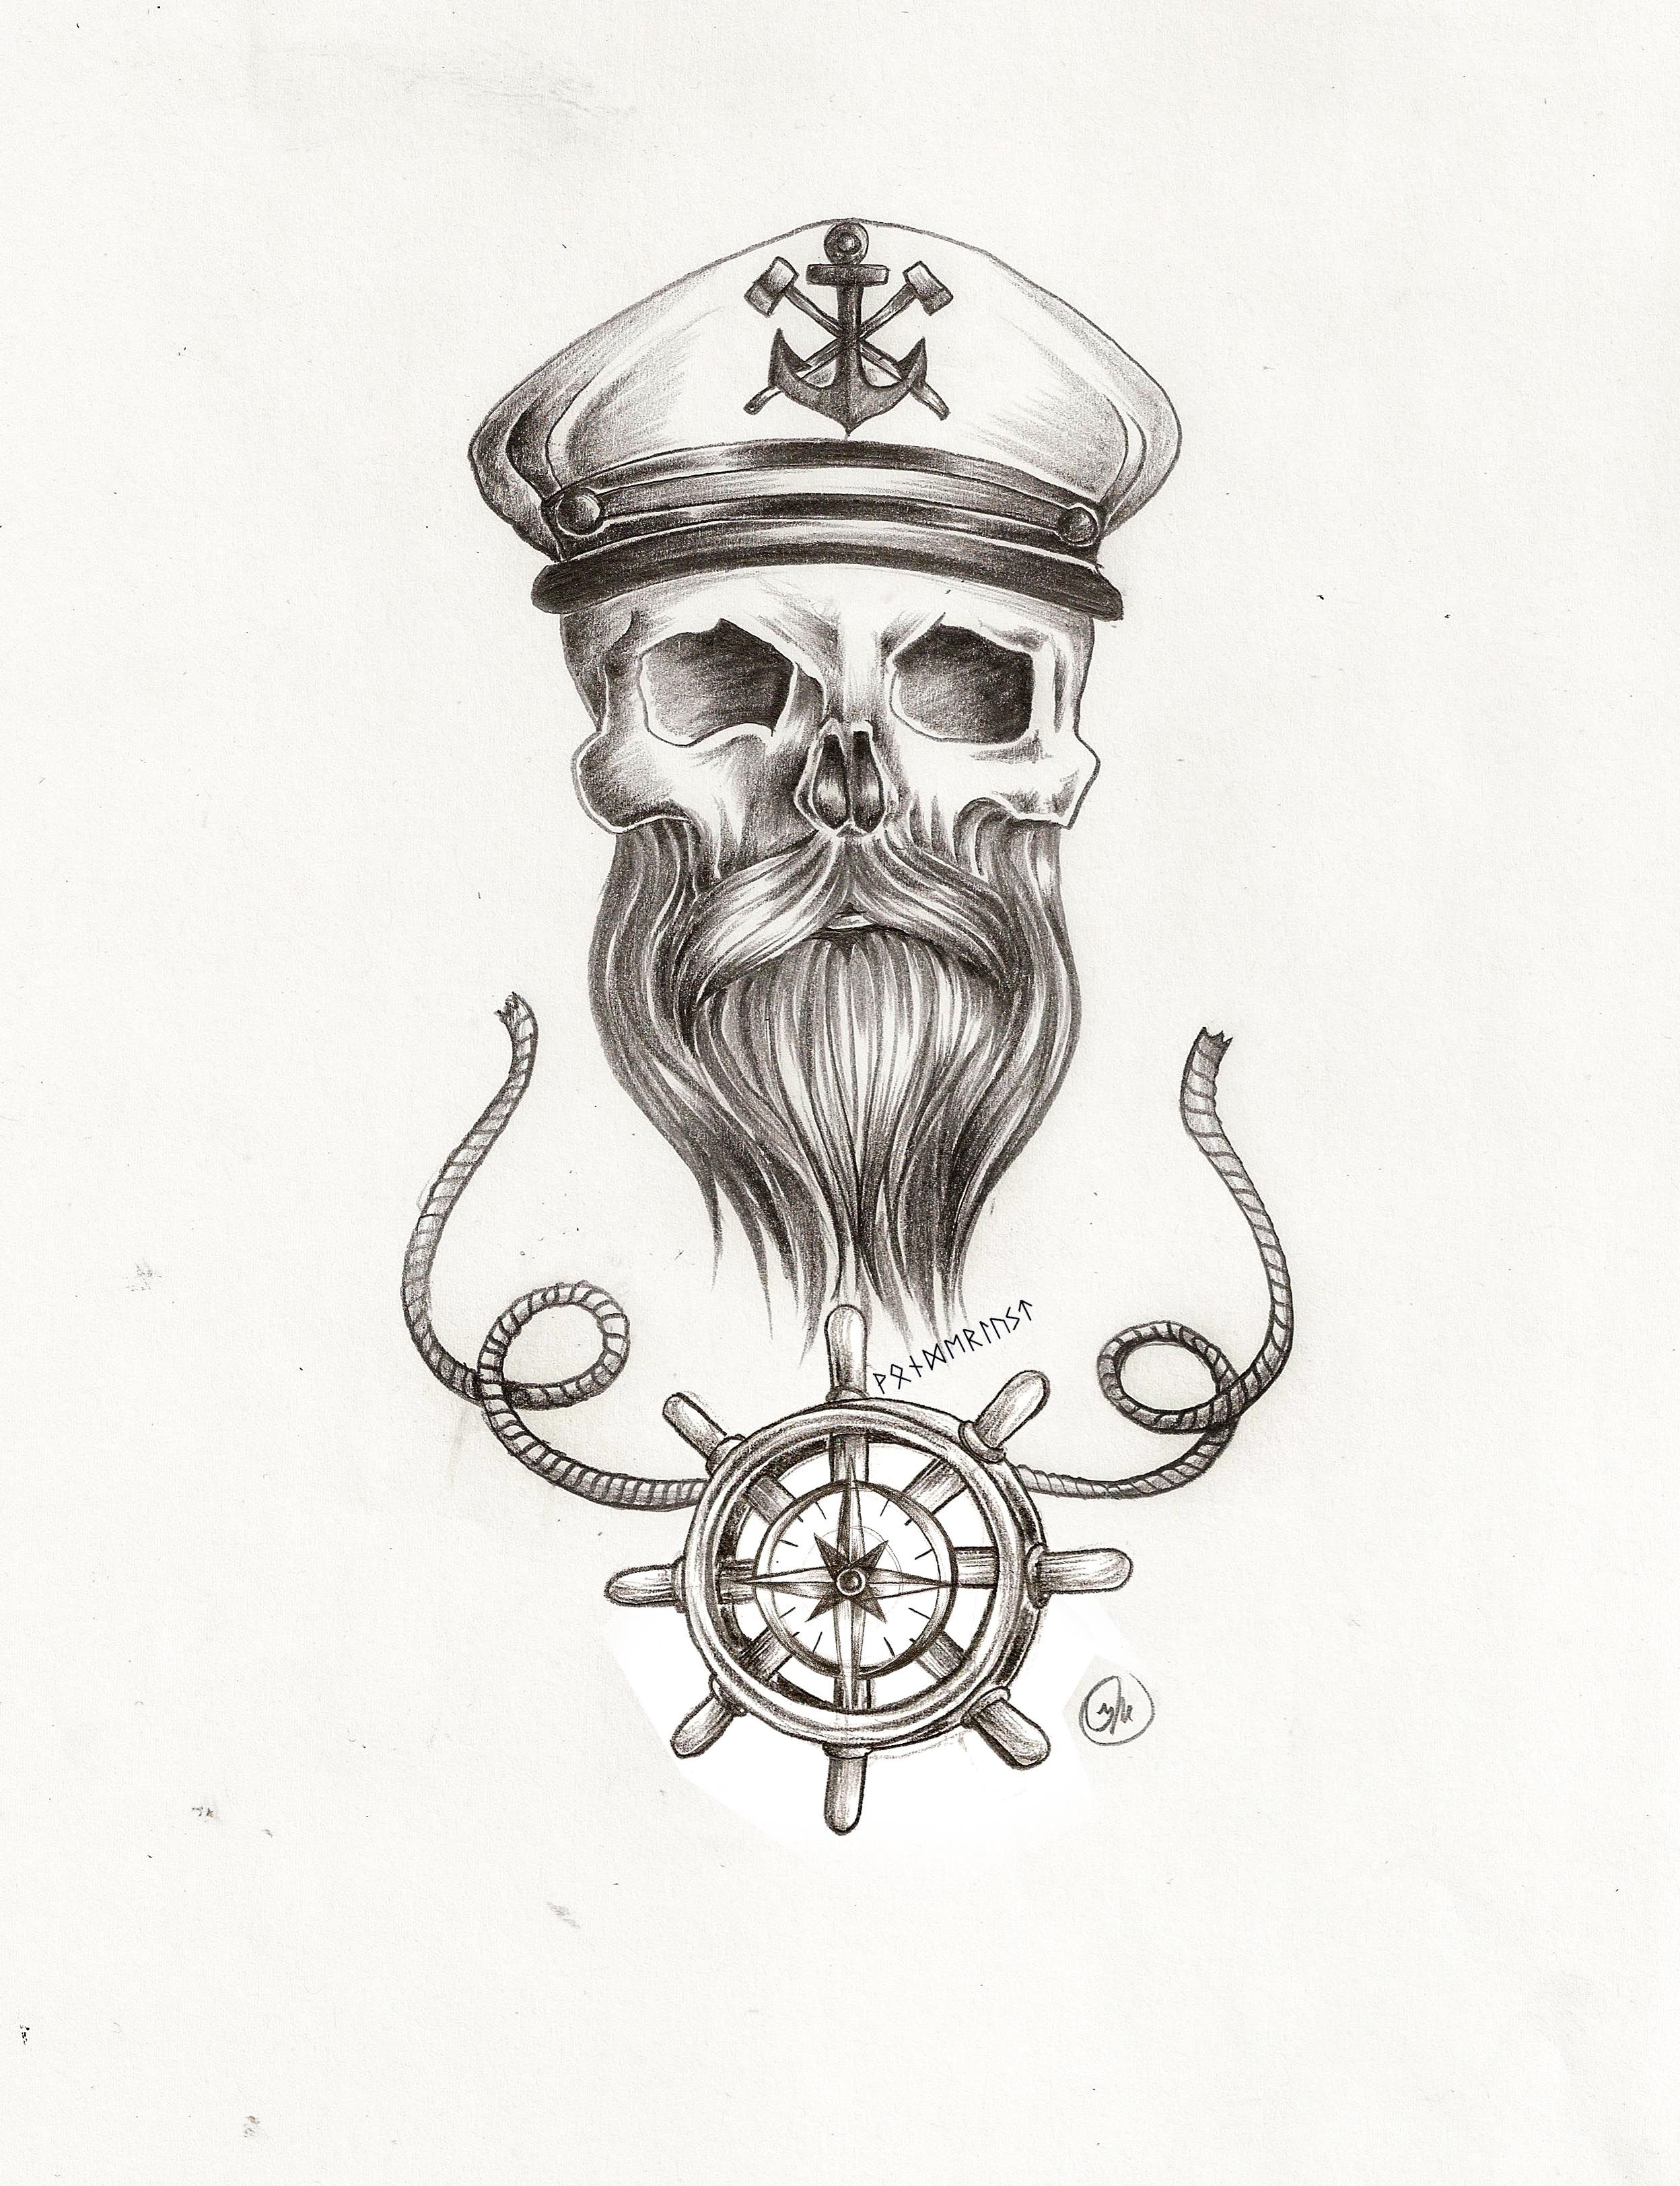 beard skull nautical tattoo pencil sketch with sailor captains hat and steering with rope detail. Black Bedroom Furniture Sets. Home Design Ideas